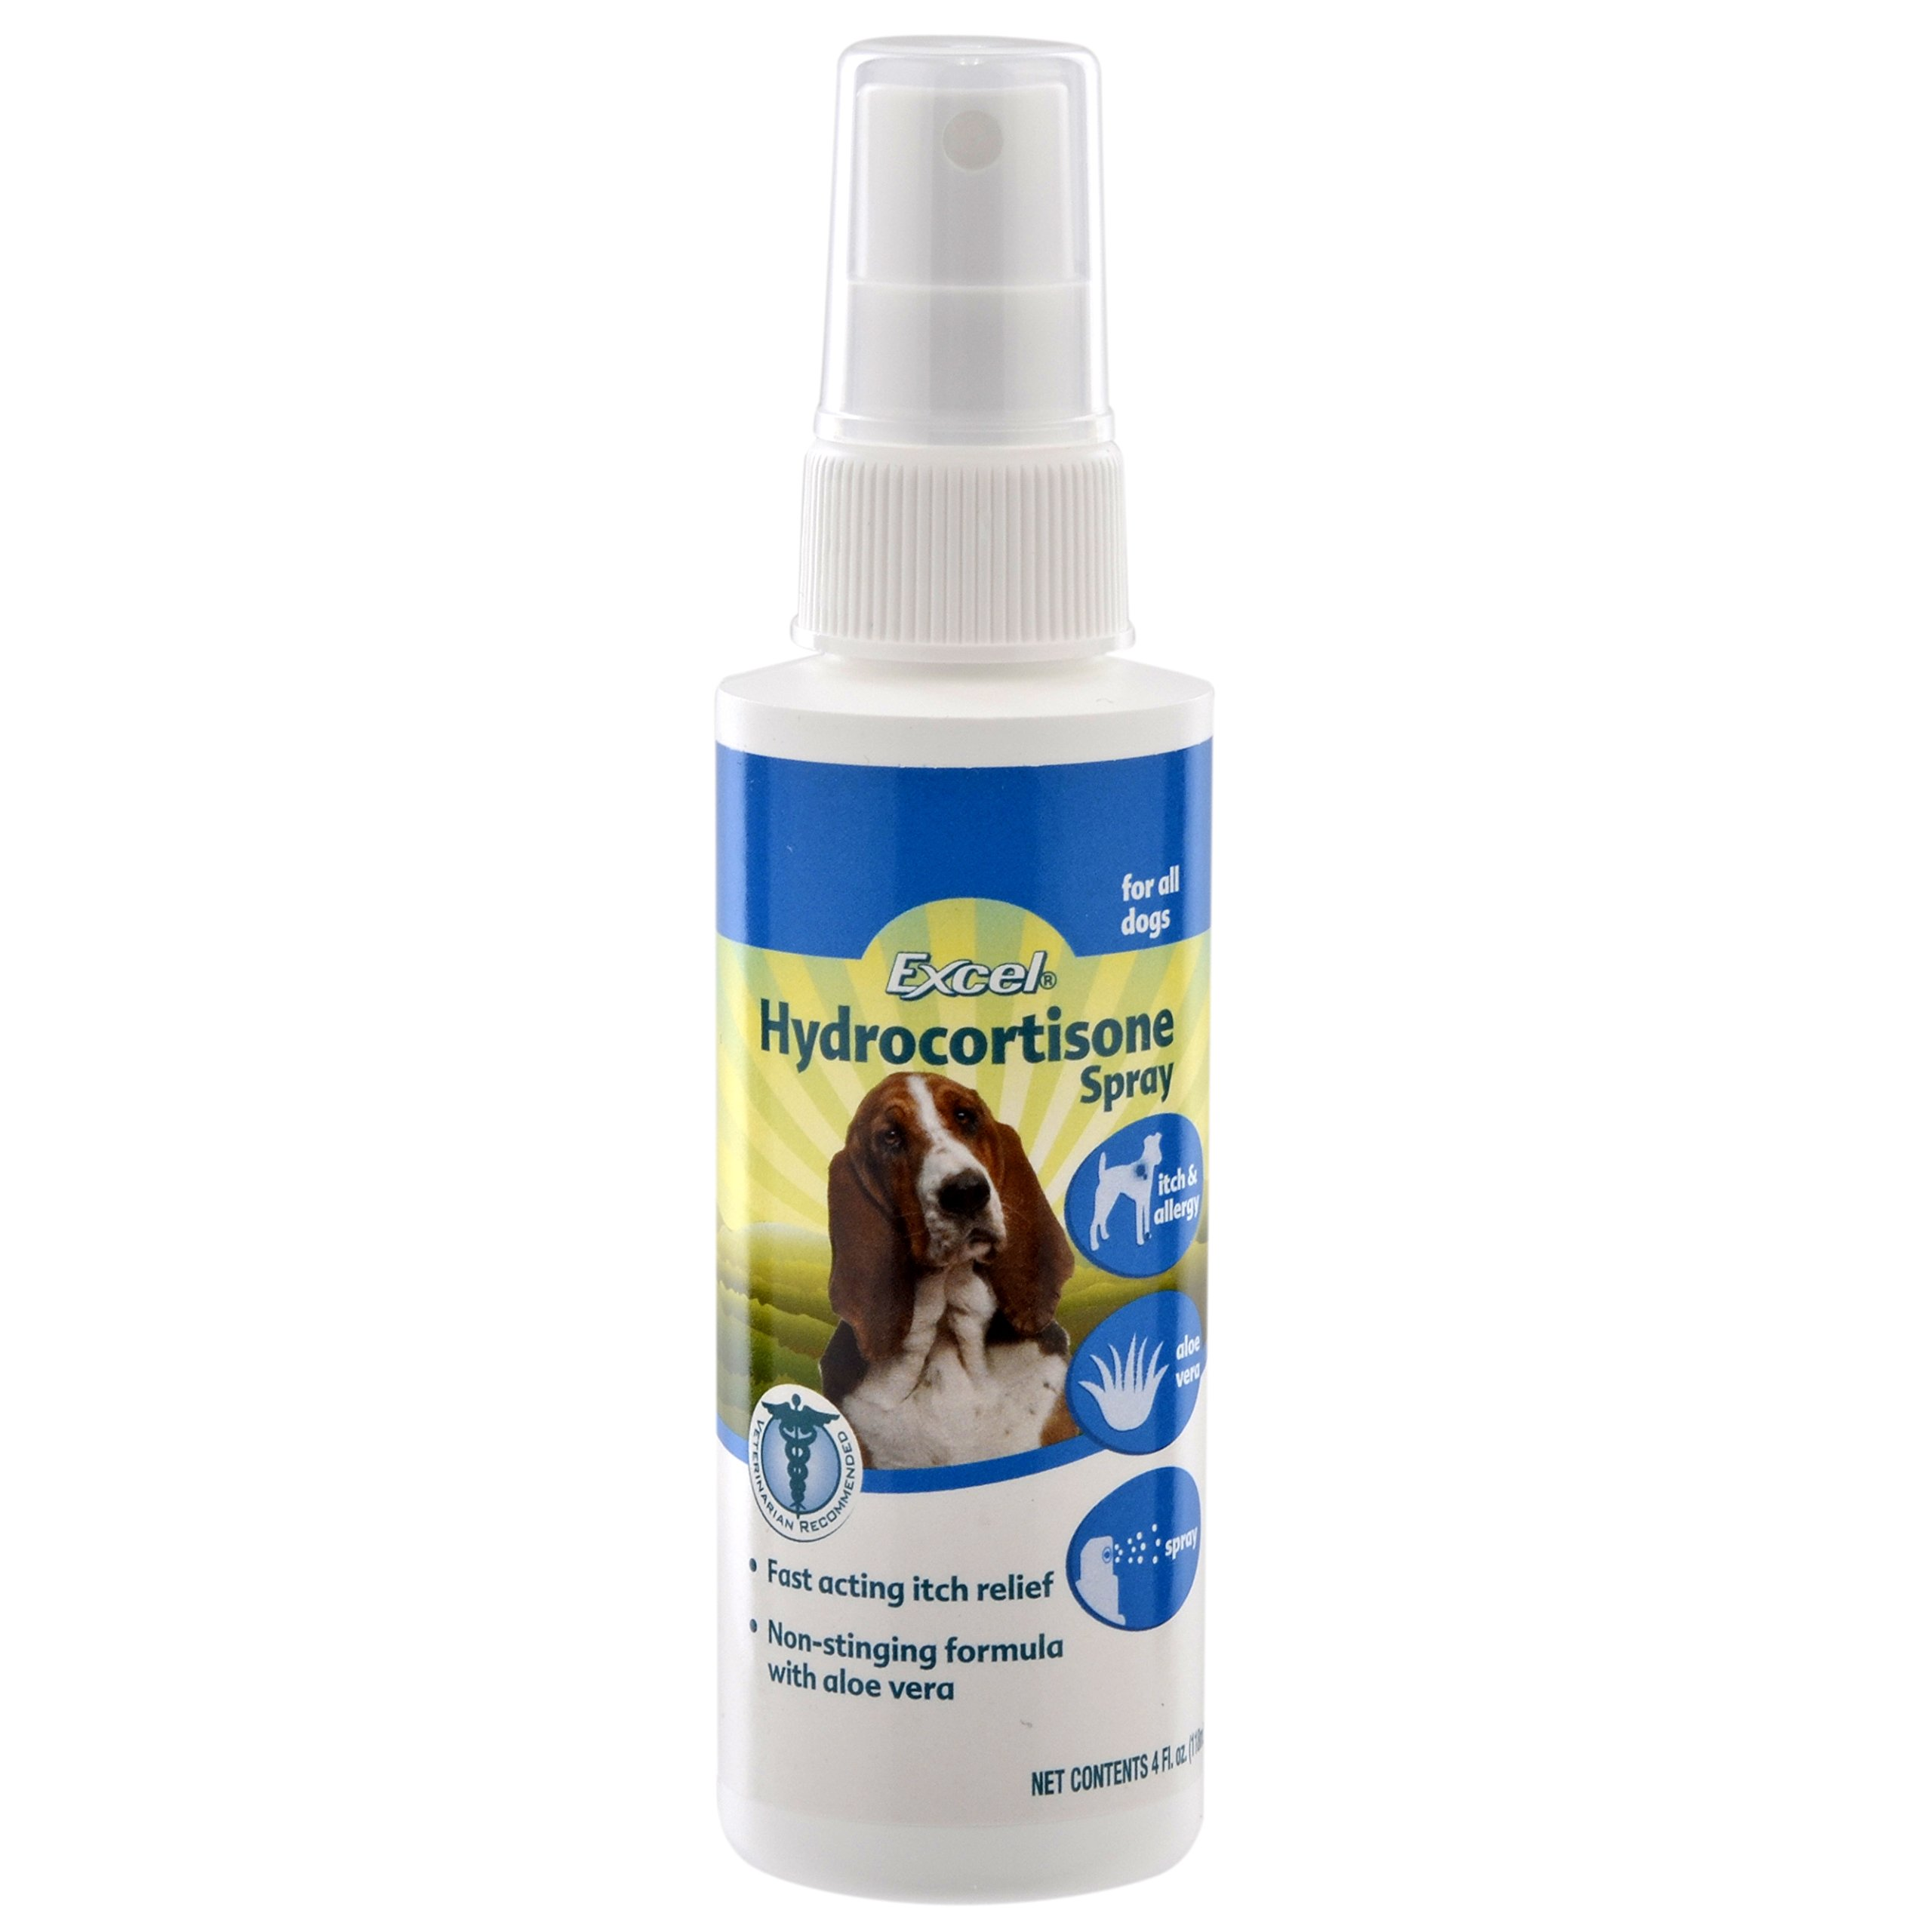 Excel Hydrocortisone Spray 4 oz